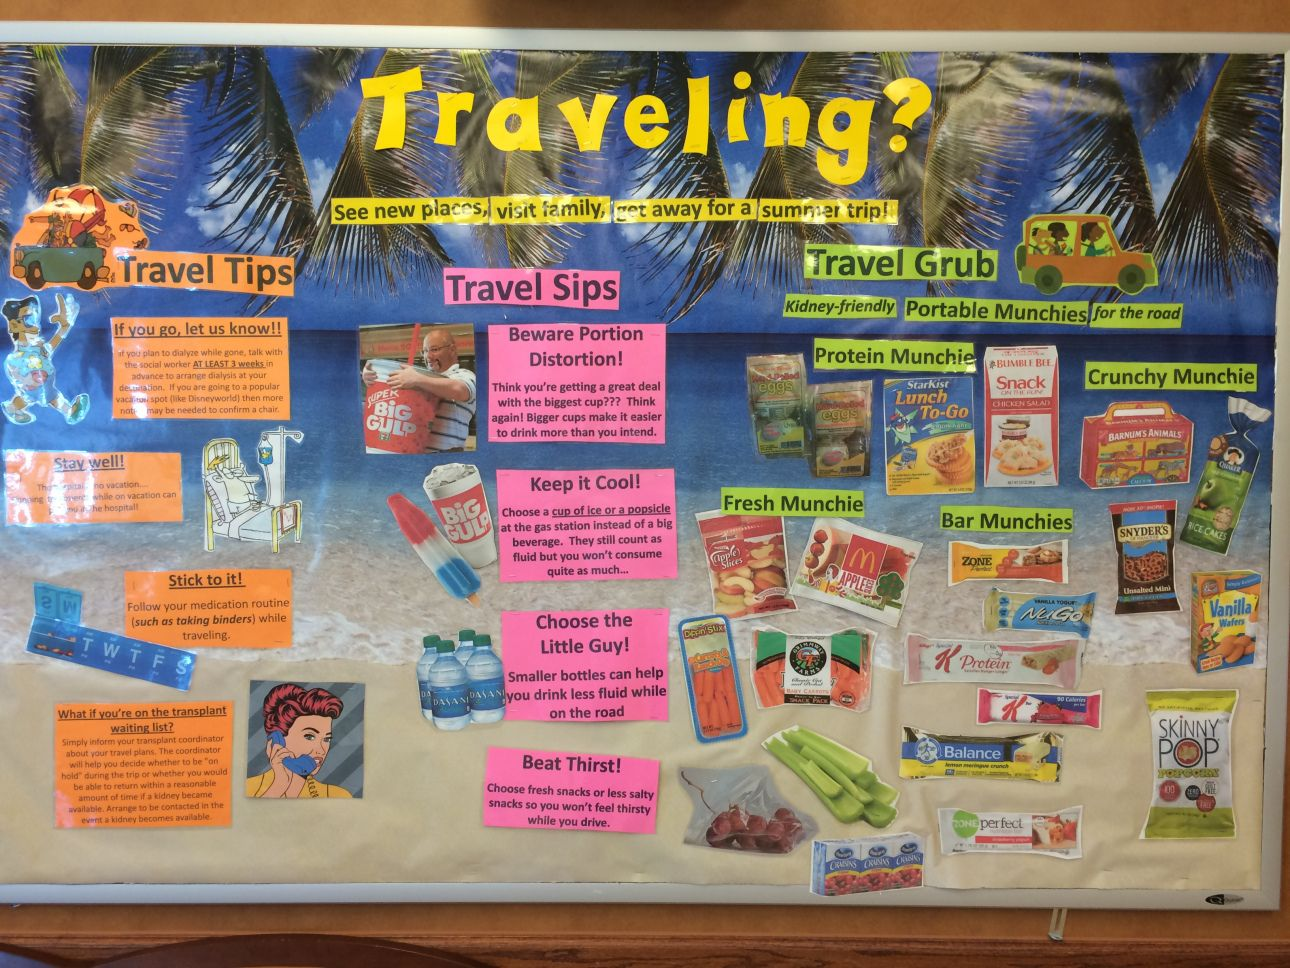 renal dietitian renal diet travel on renal diet dialysis bulletin board